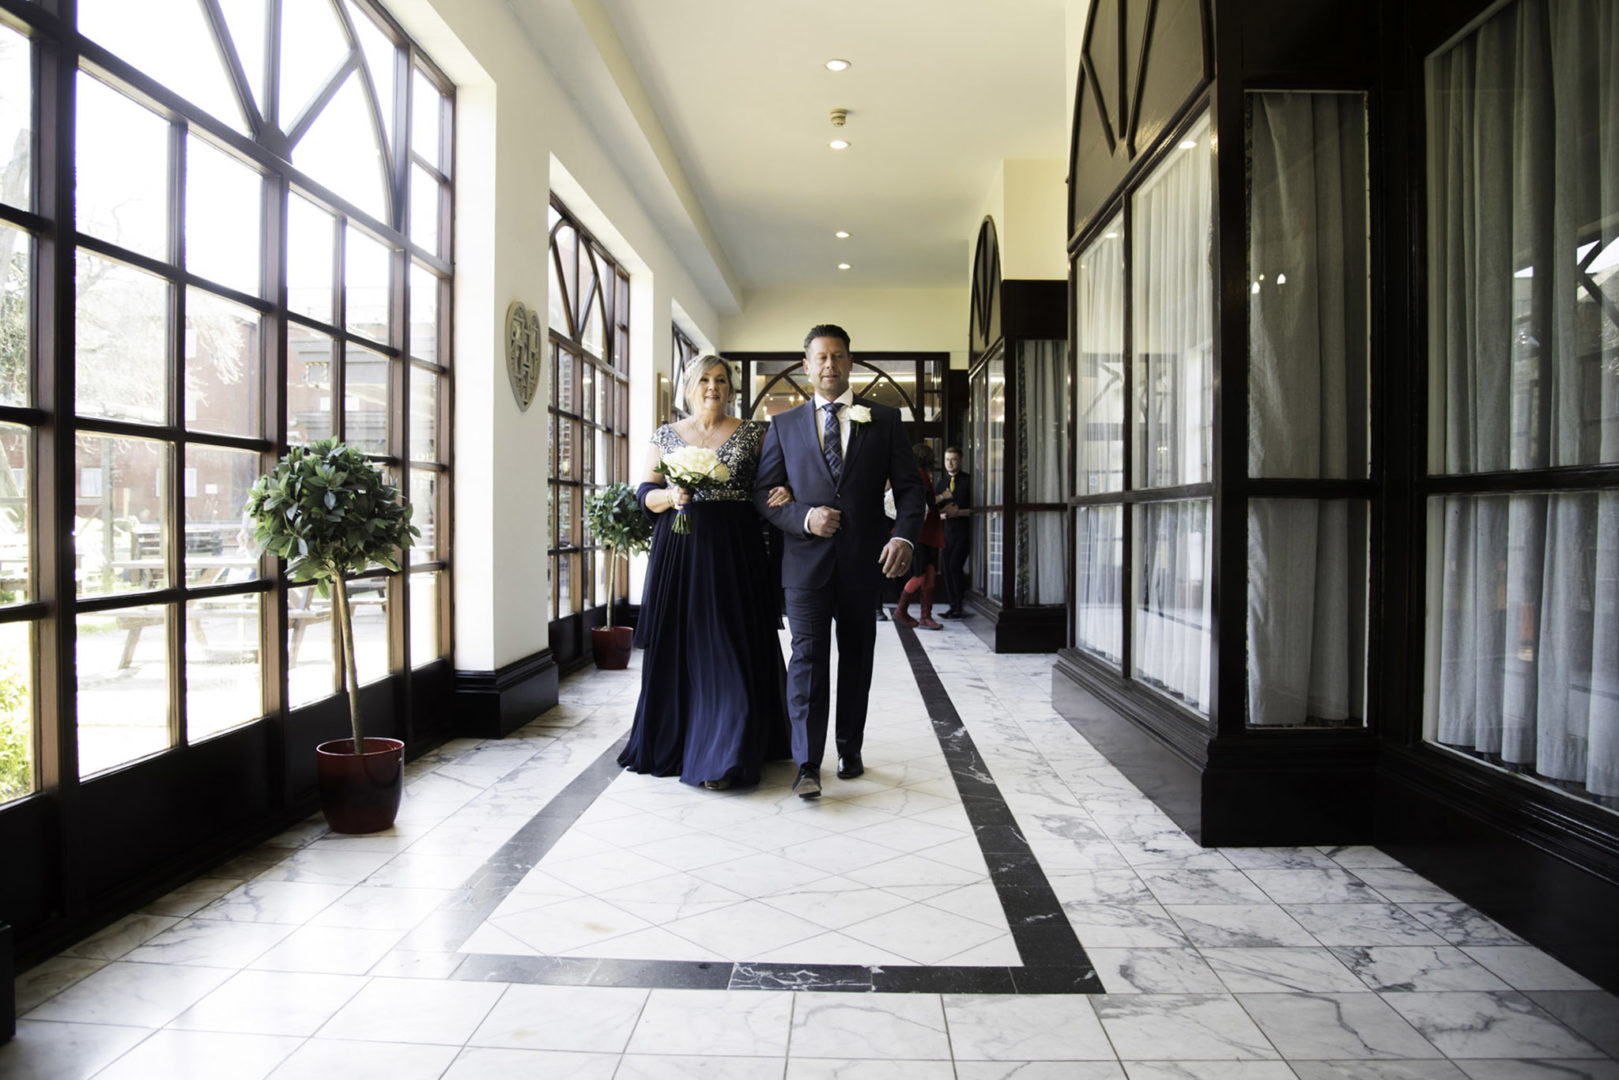 Lynn walks the last few steps accompanied by her son. Photo by AJTImages. Wedding vow renewal at The Royal Court Hotel